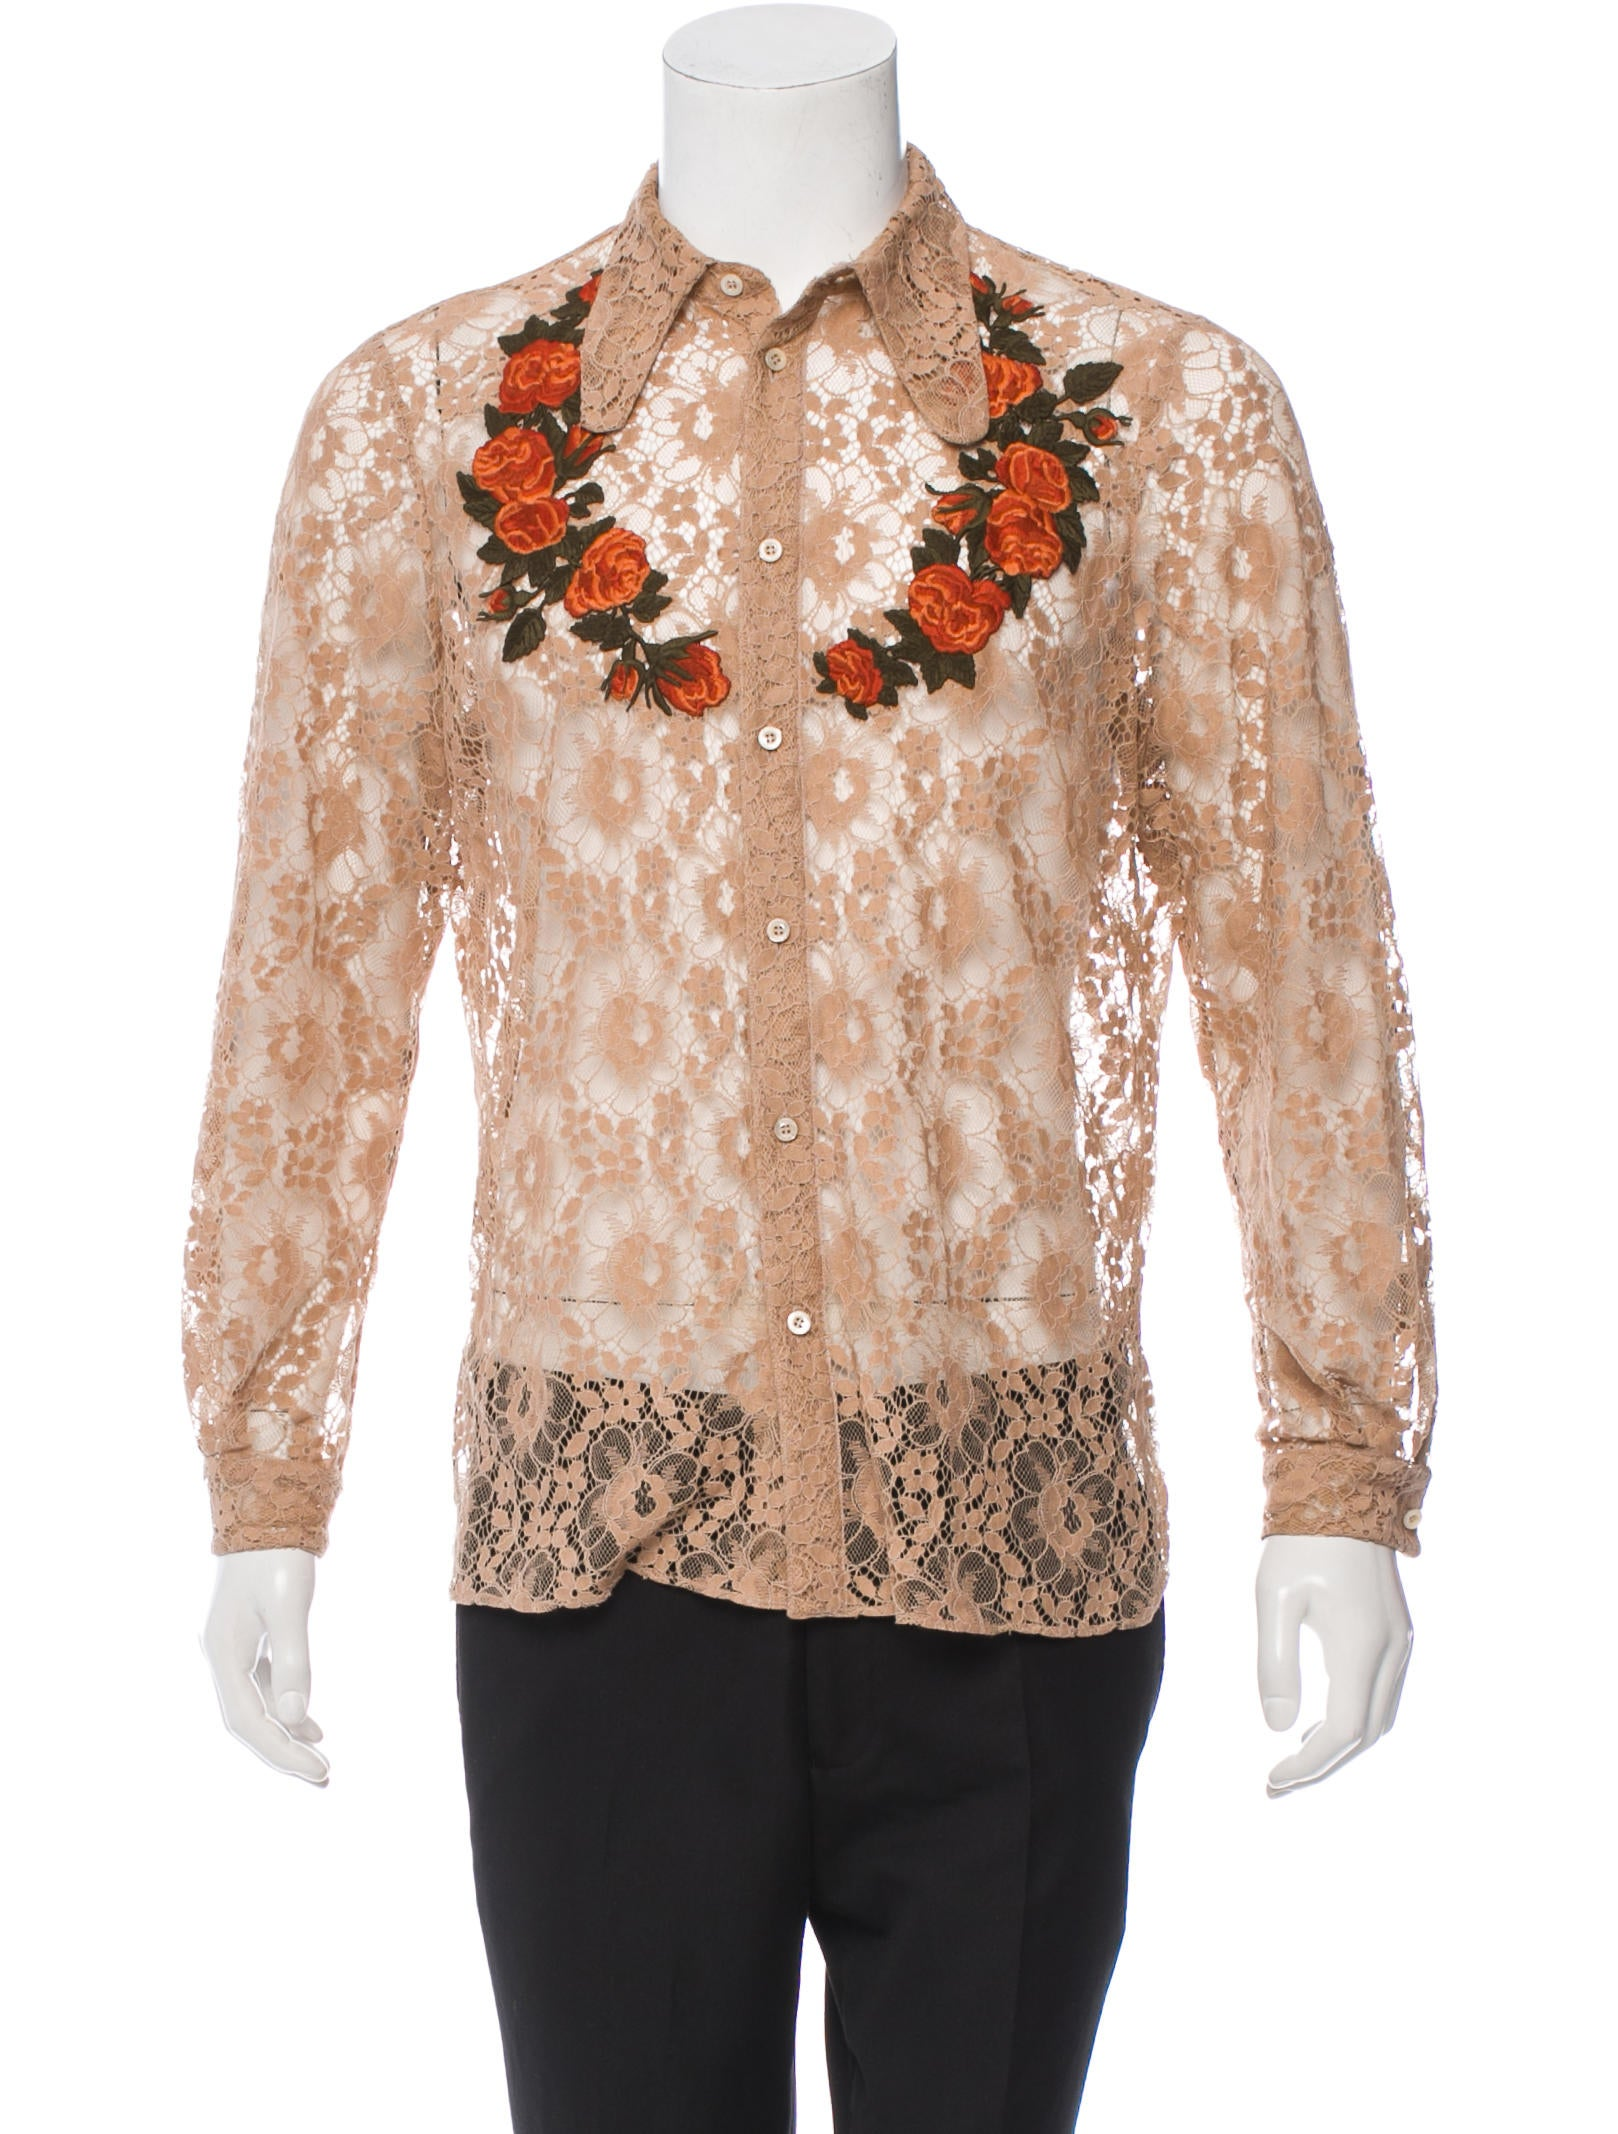 Gucci Floral Lace Western Shirt Clothing Guc80721